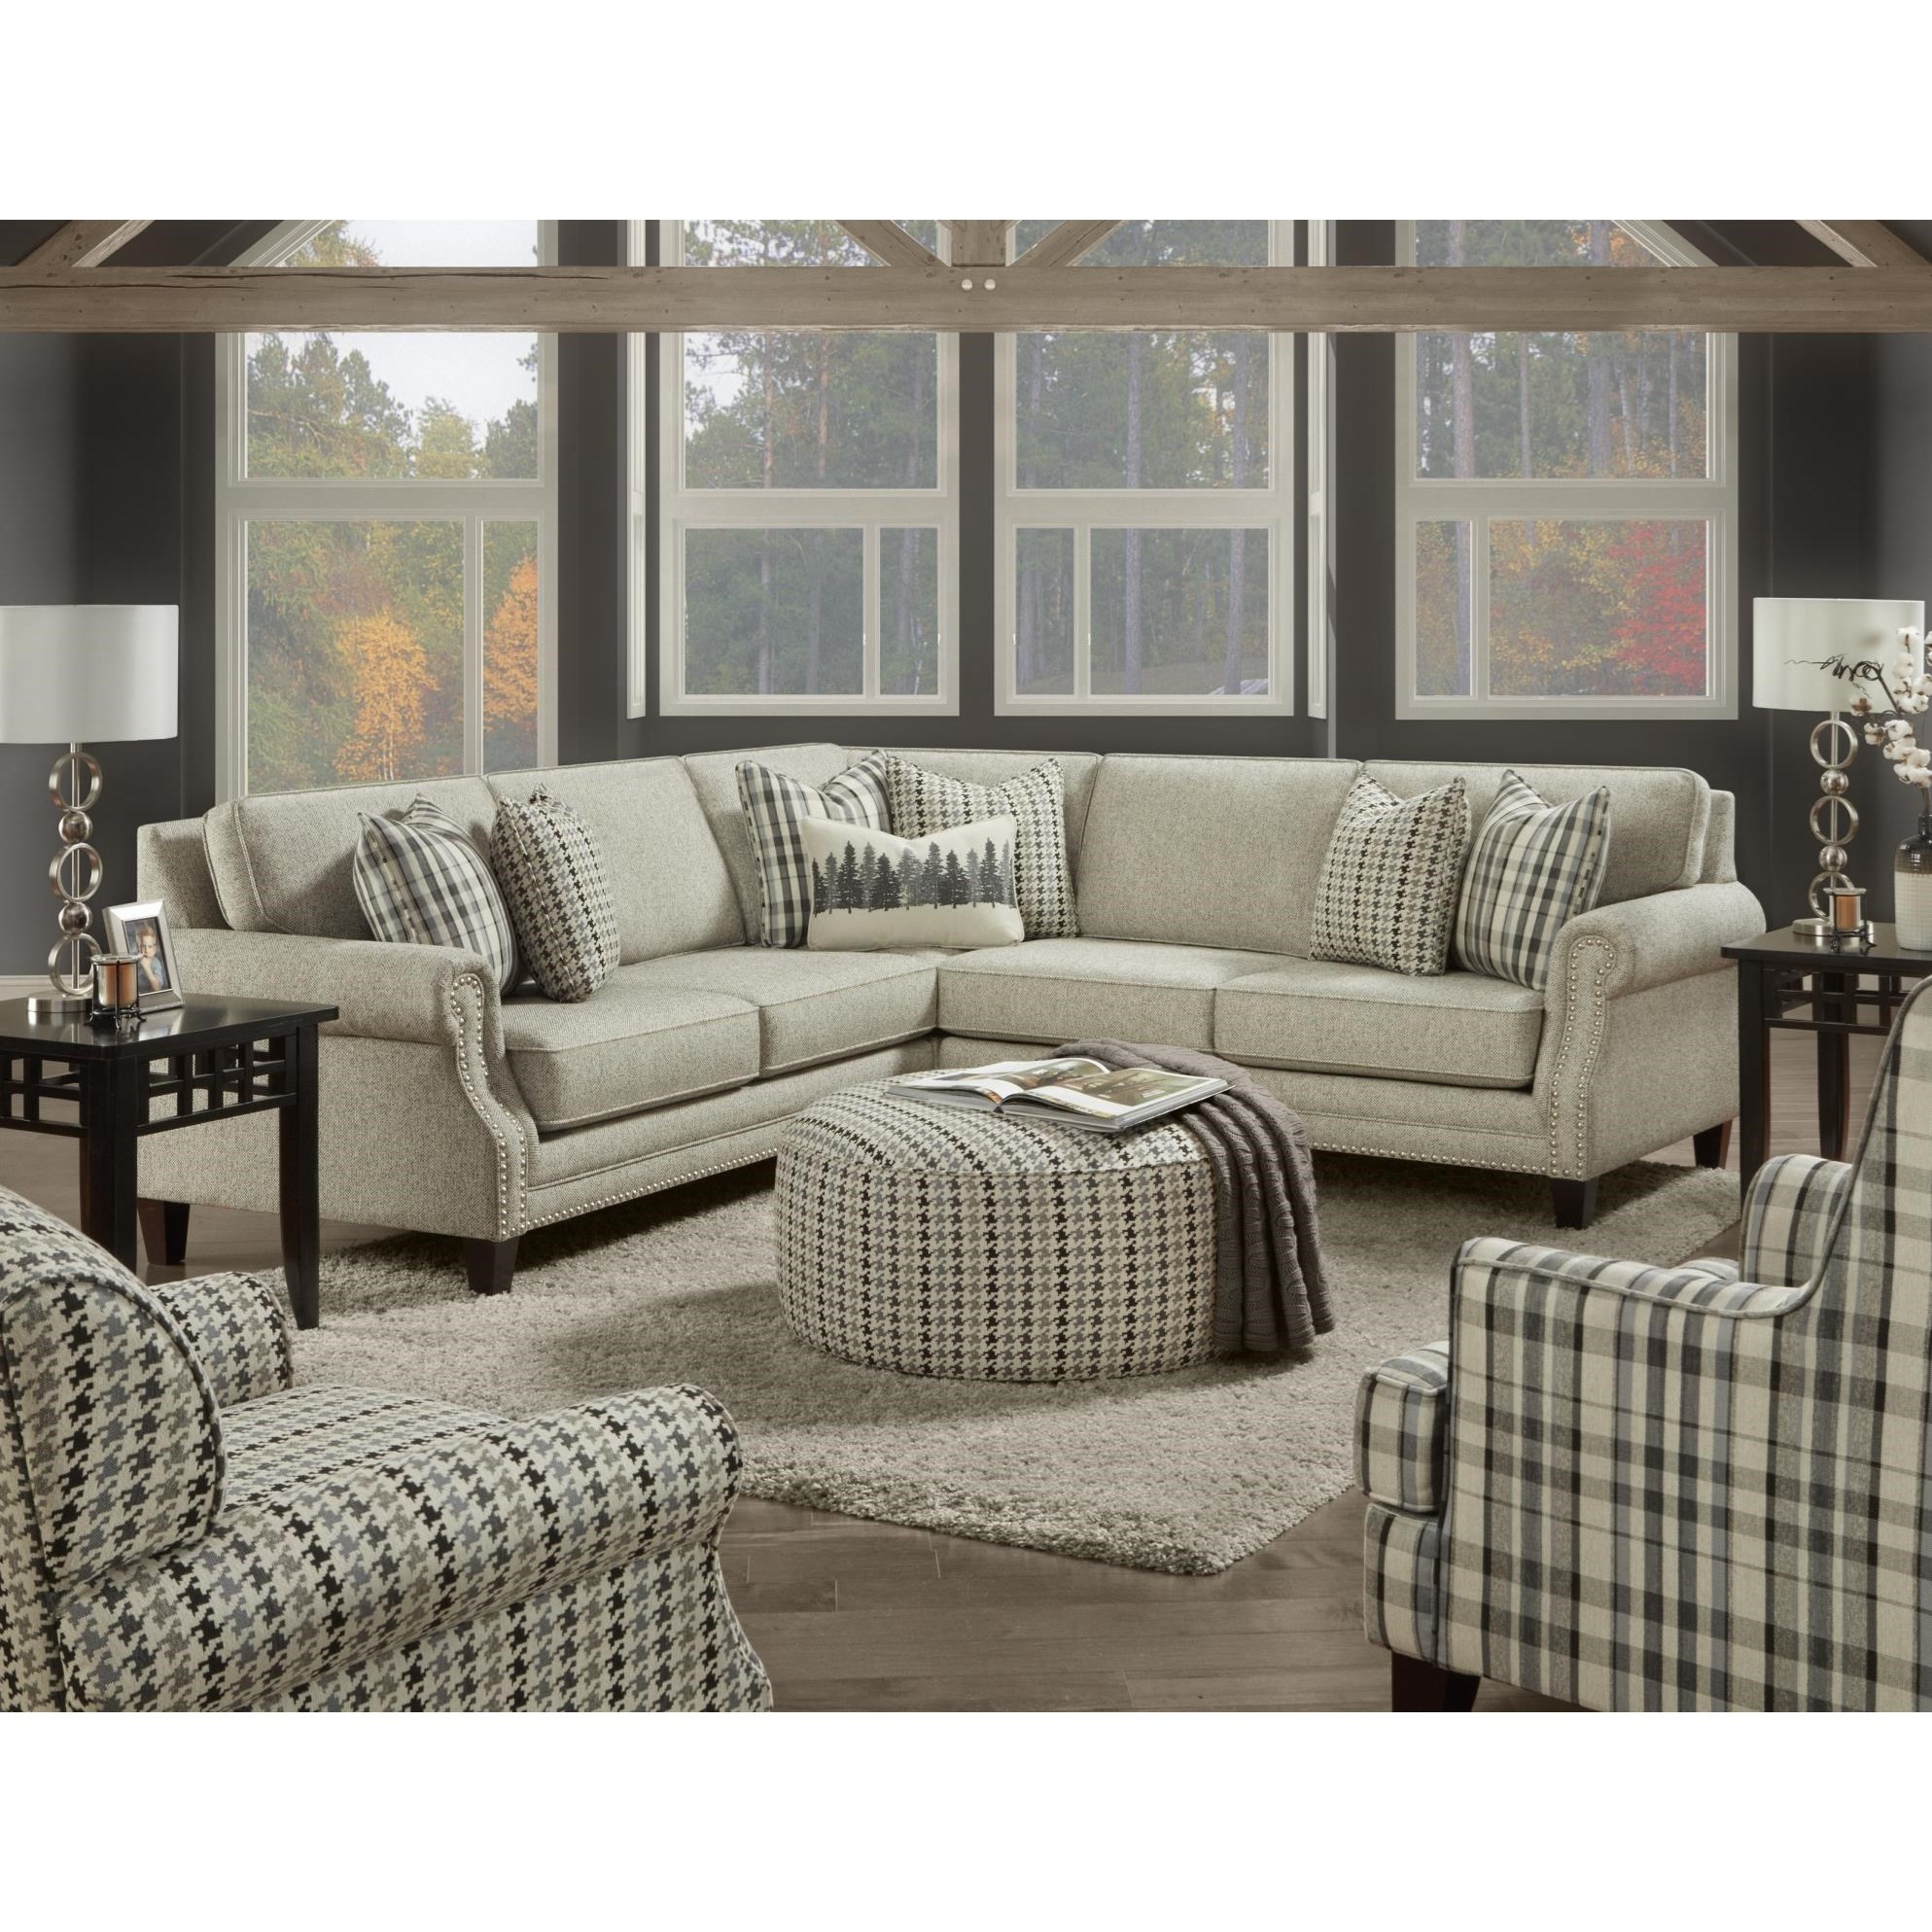 2530 Living Room Group by FN at Lindy's Furniture Company